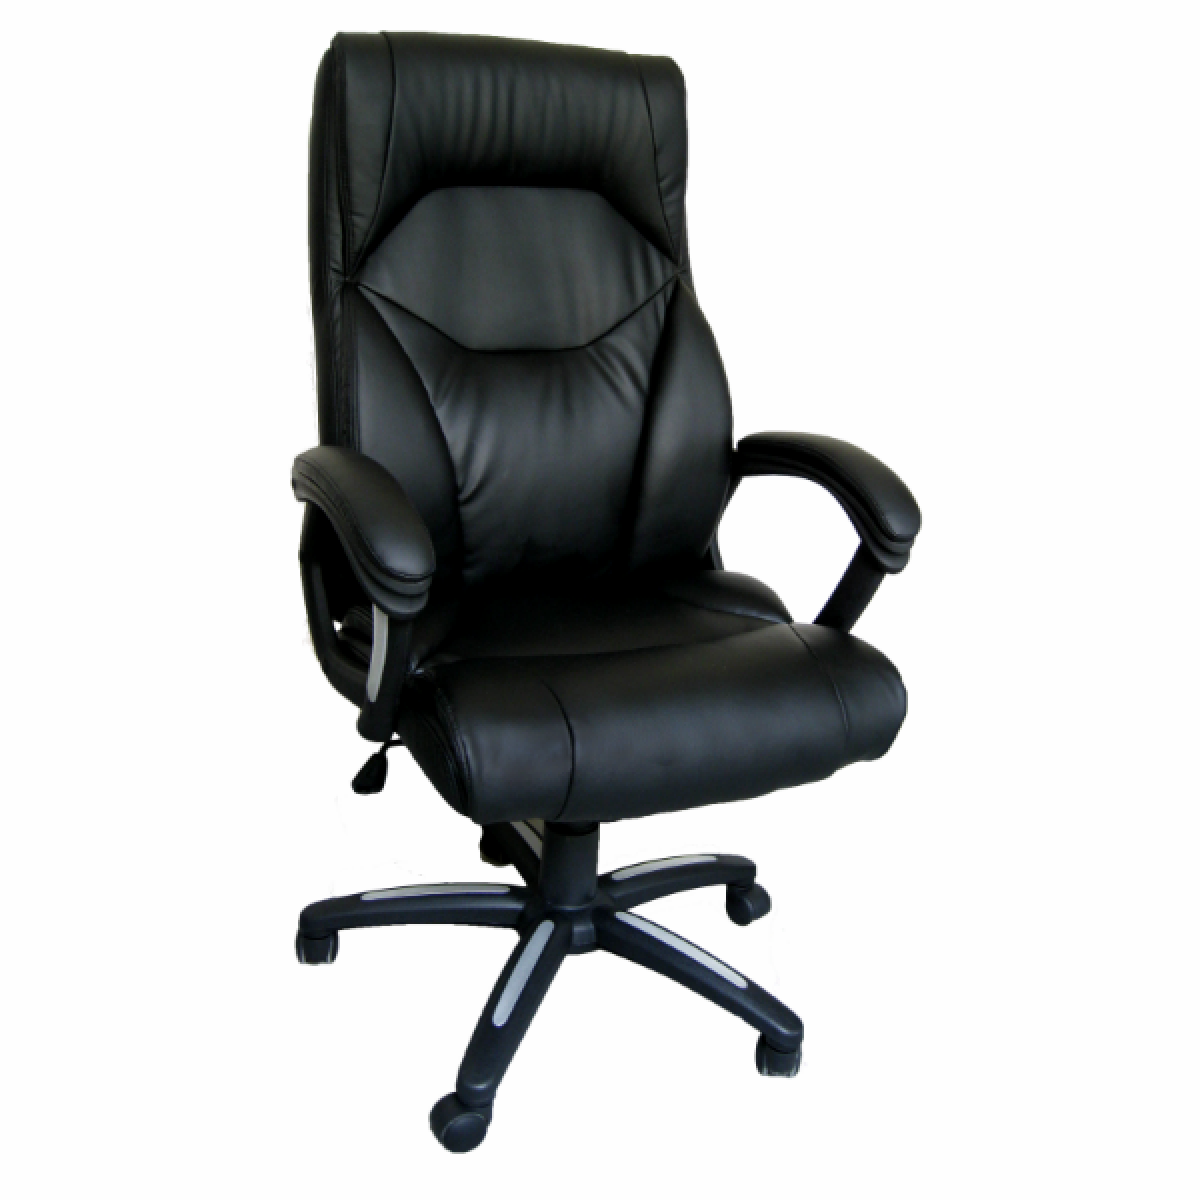 Eliza Tinsley Wellington Executive Office Chair Bcp T102 Bk